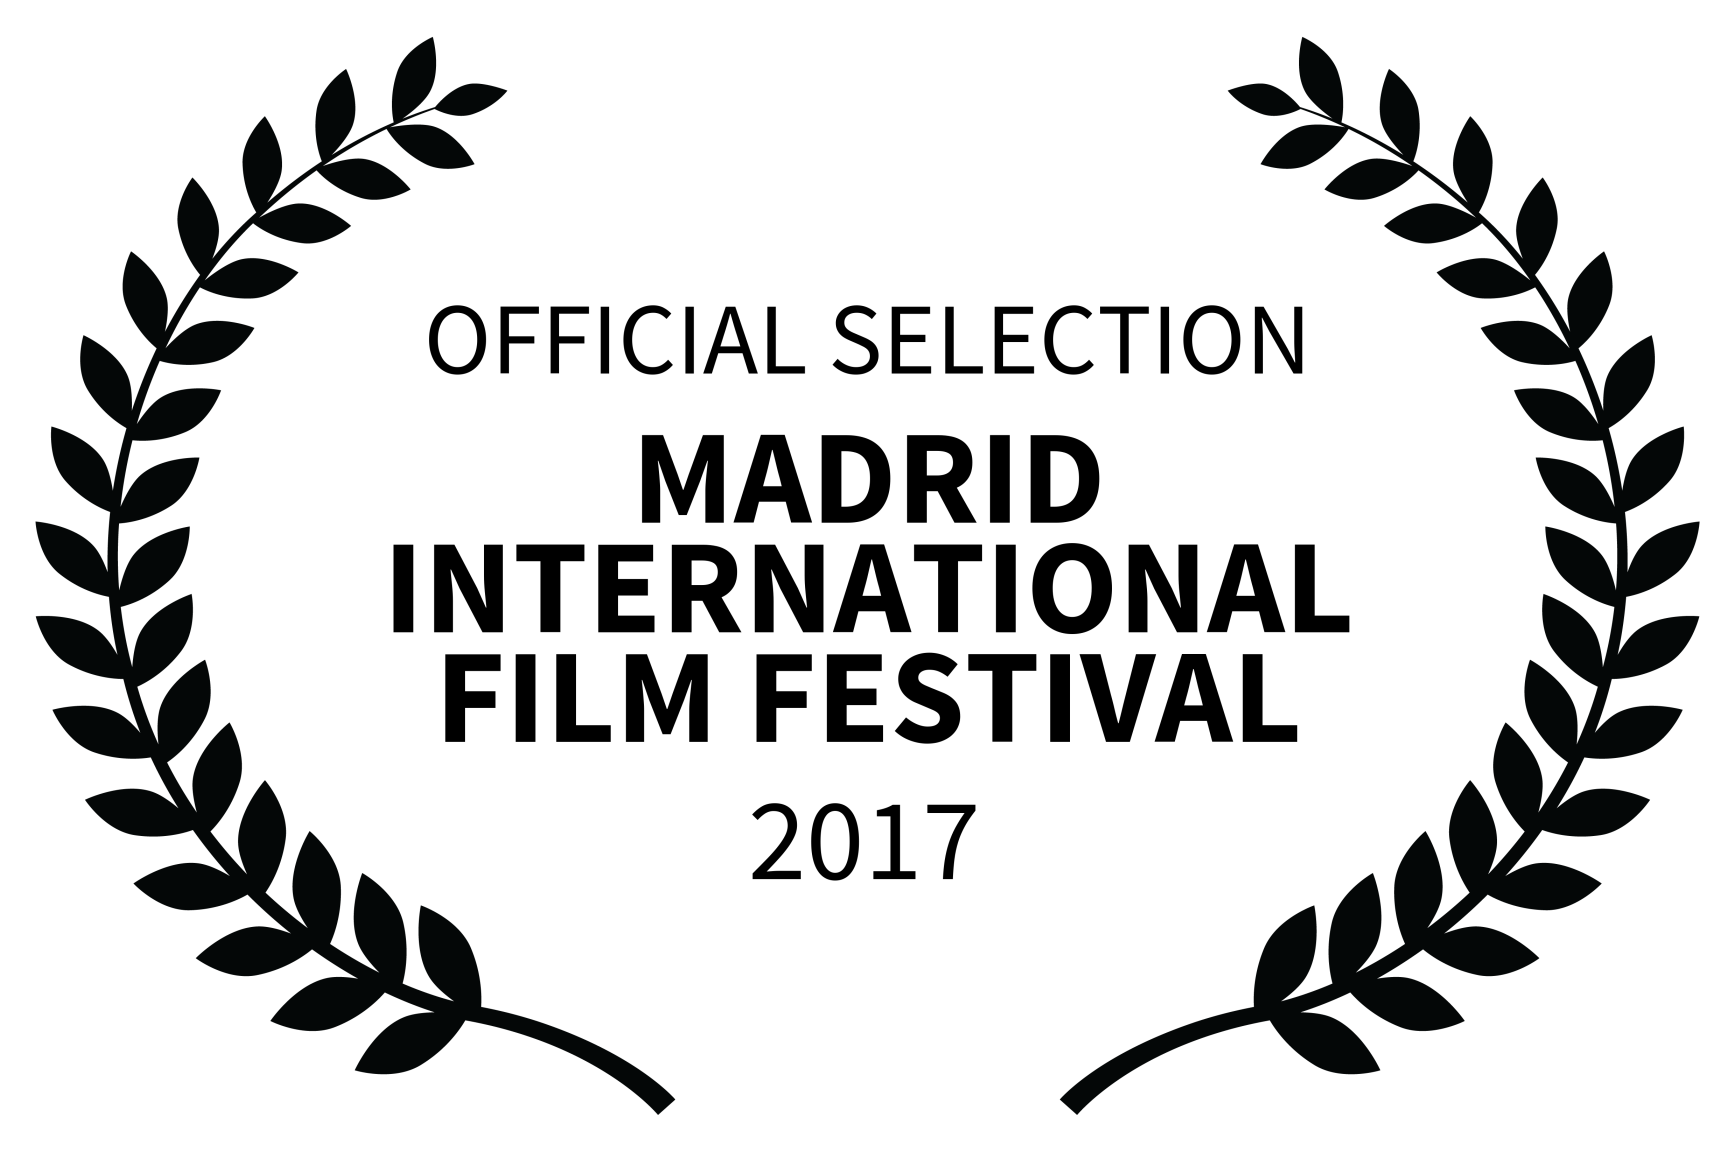 OFFICIAL SELECTION - MADRID INTERNATIONAL FILM FESTIVAL - 2017